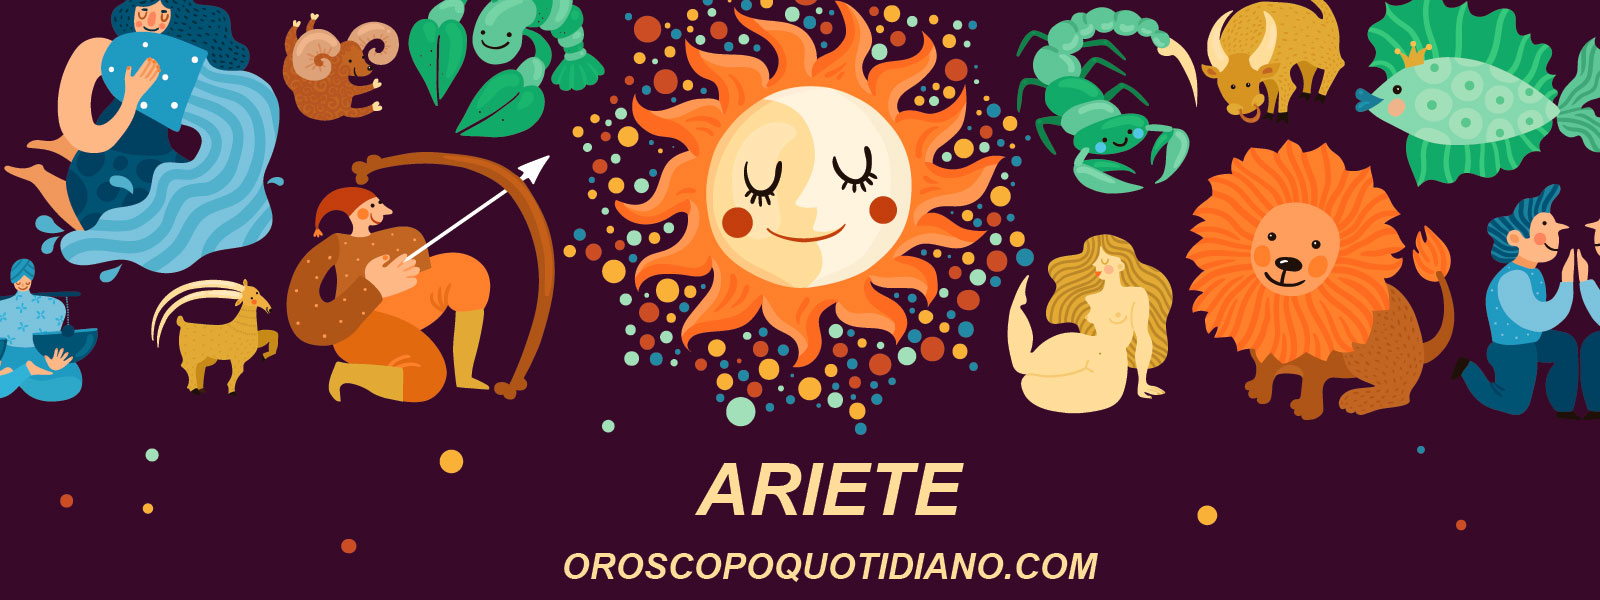 https://oroscopoquotidiano.com/wp-content/uploads/2020/02/Ariete-OroscopoQuotidiano.jpg